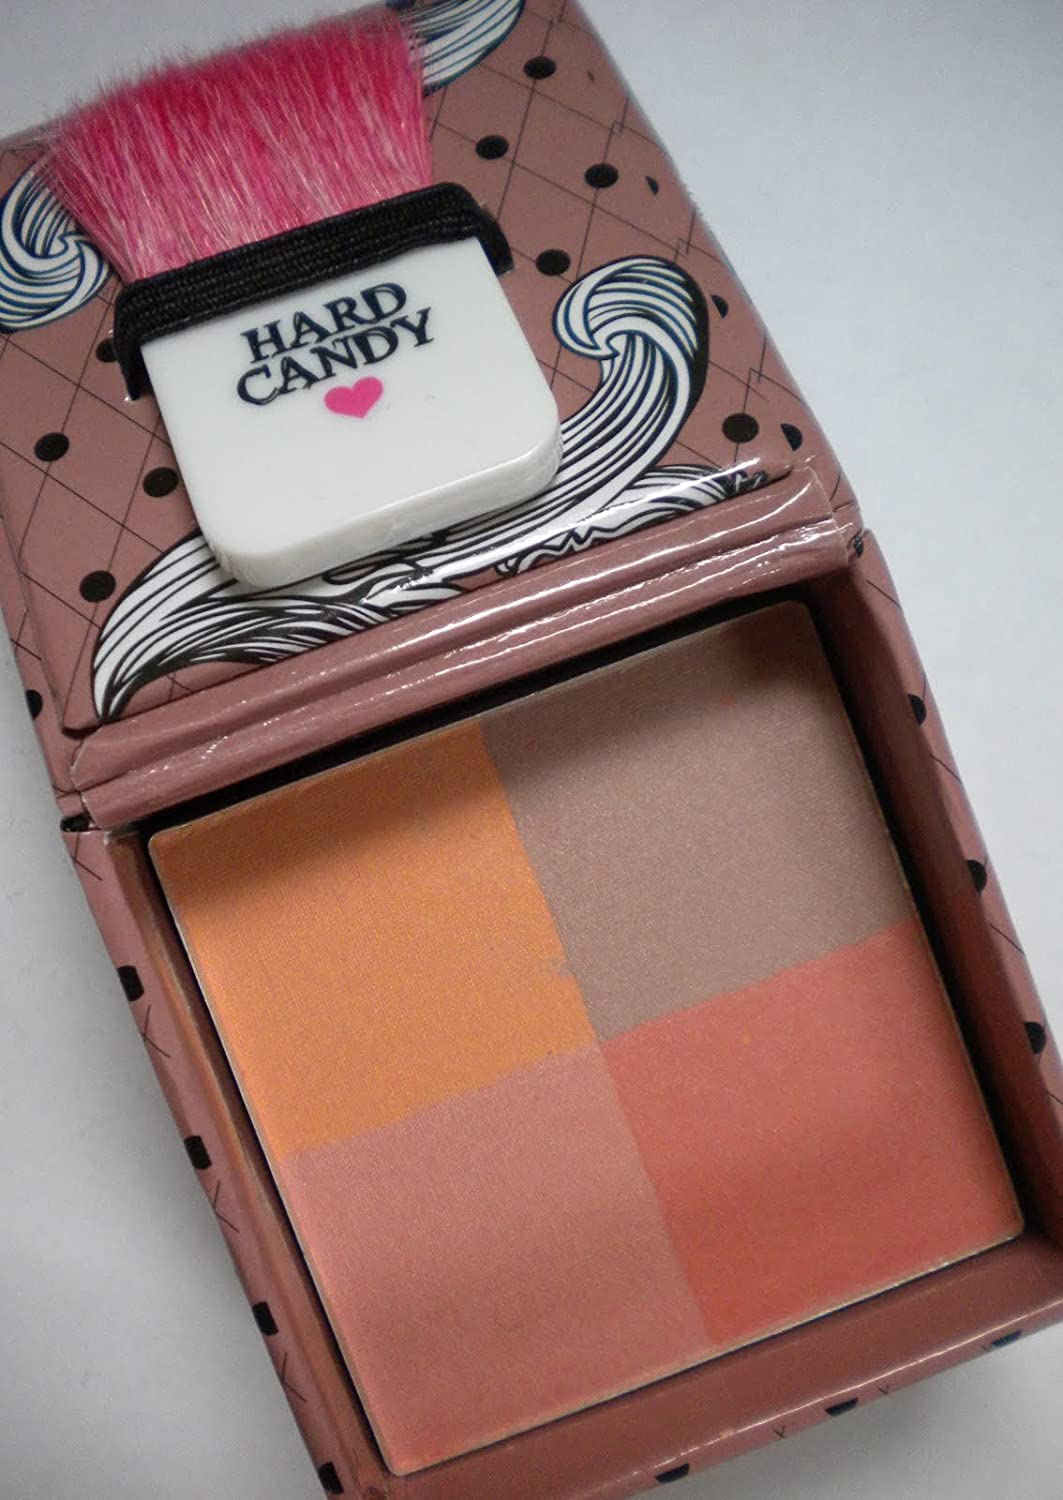 Hard Candy Fox in a Box Powder Compact #359 Smooth Talker